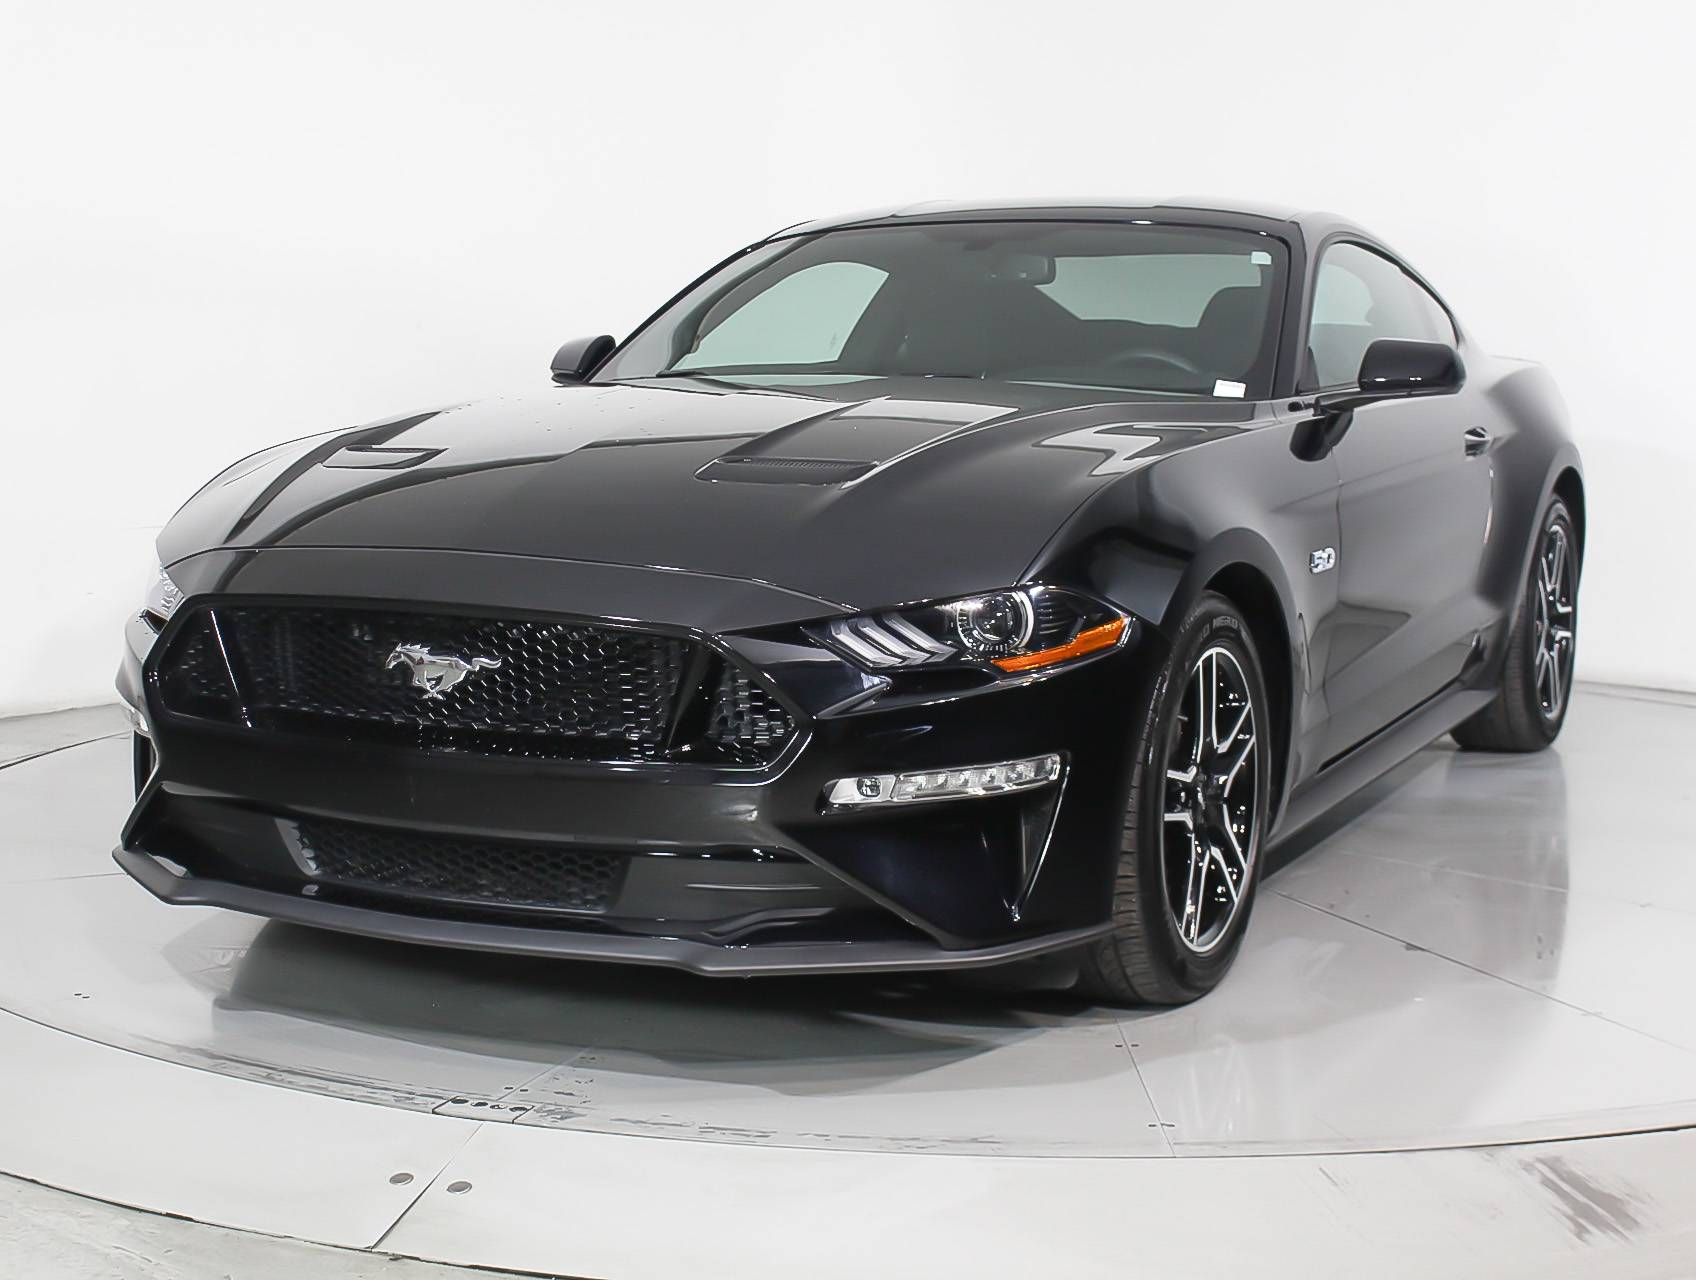 Used 2018 FORD MUSTANG GT Coupe for sale in MIAMI, FL